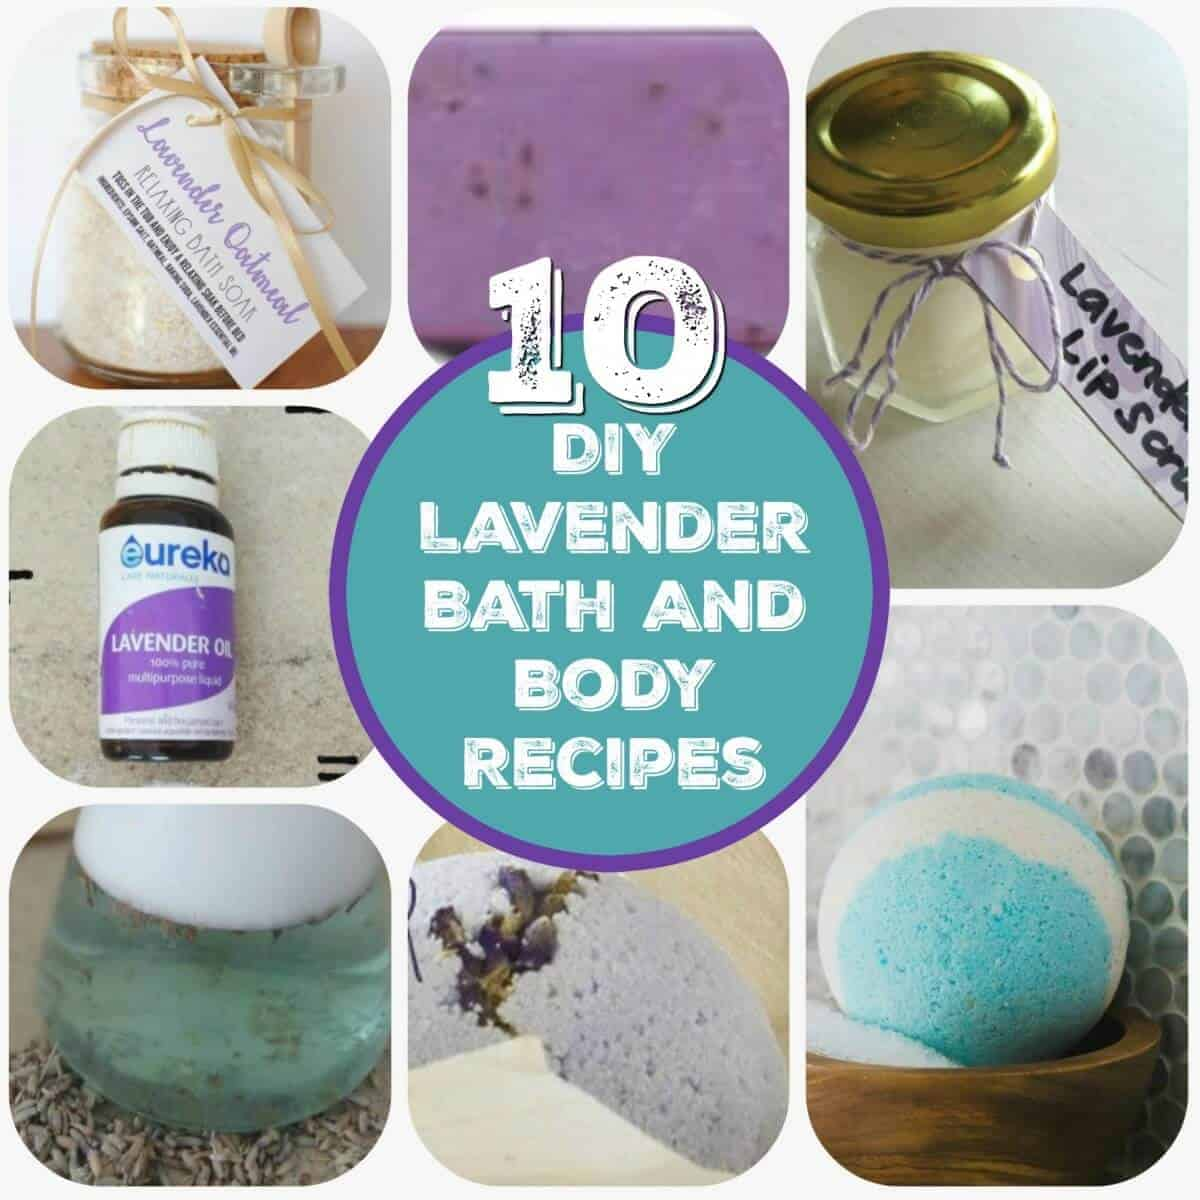 lavender-bath-recipes-soap-salt-facial-4